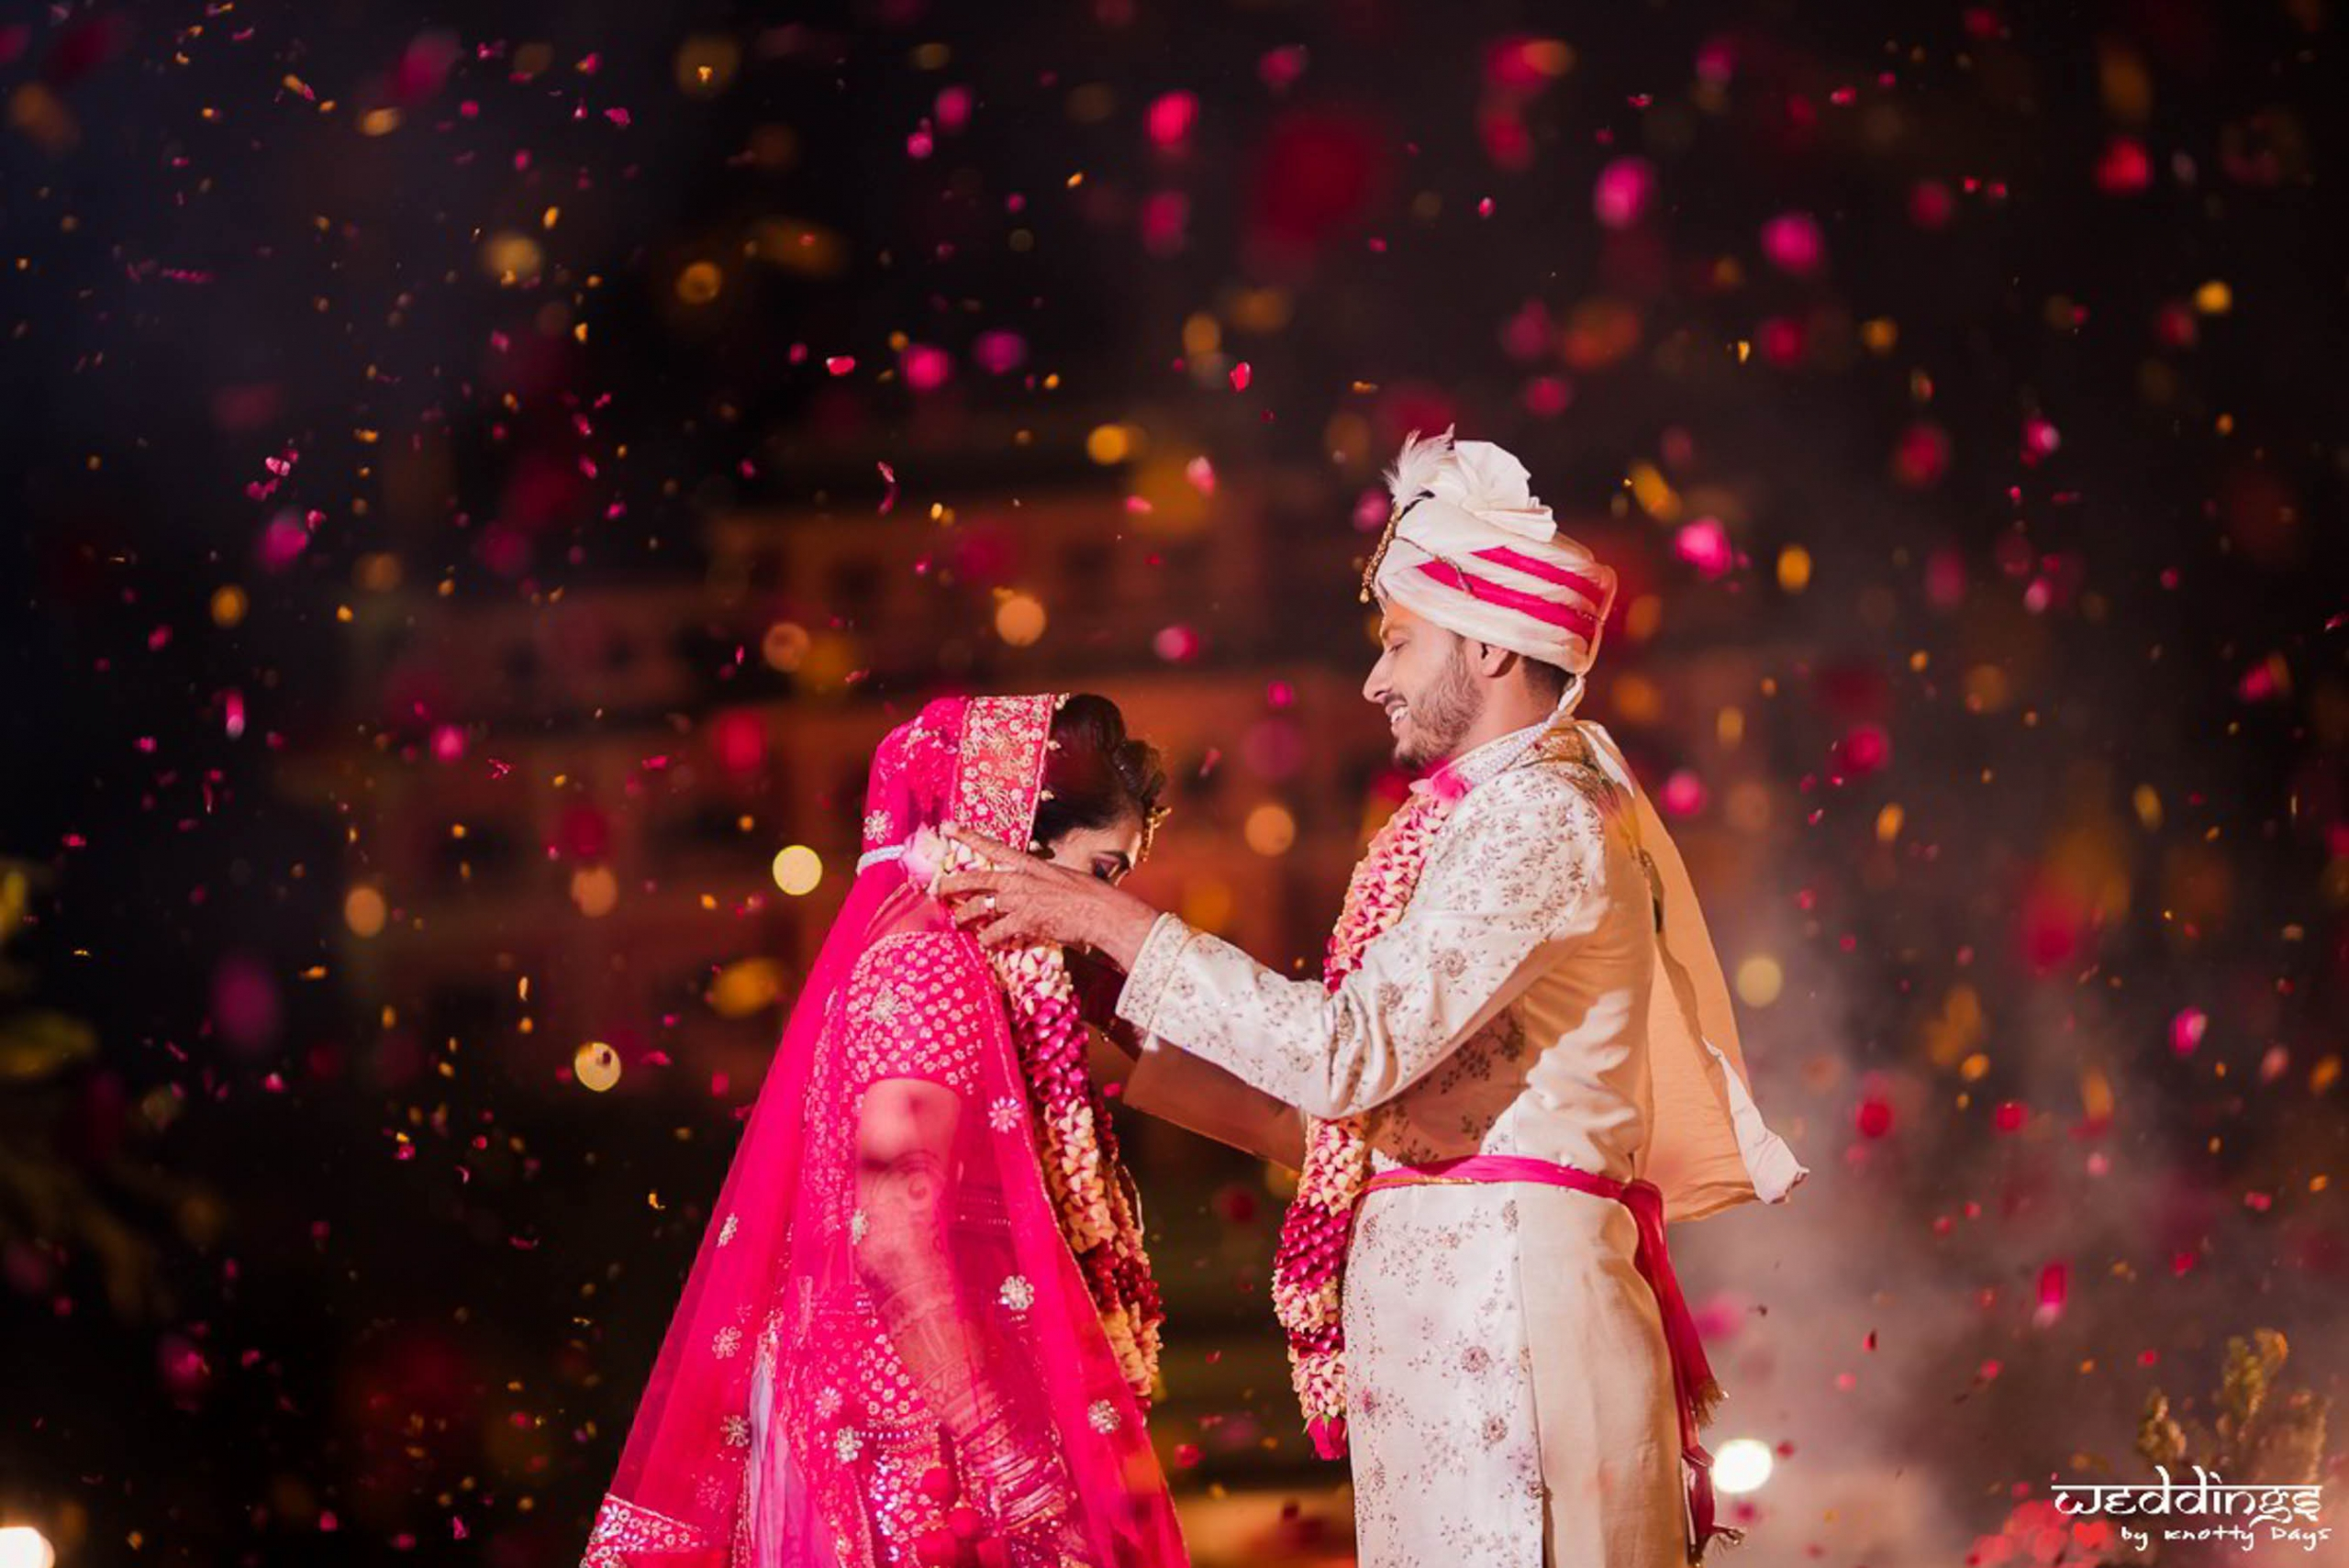 Nupur and Saurabh's royal Rajasthani Wedding in the Pink City, Jaipur